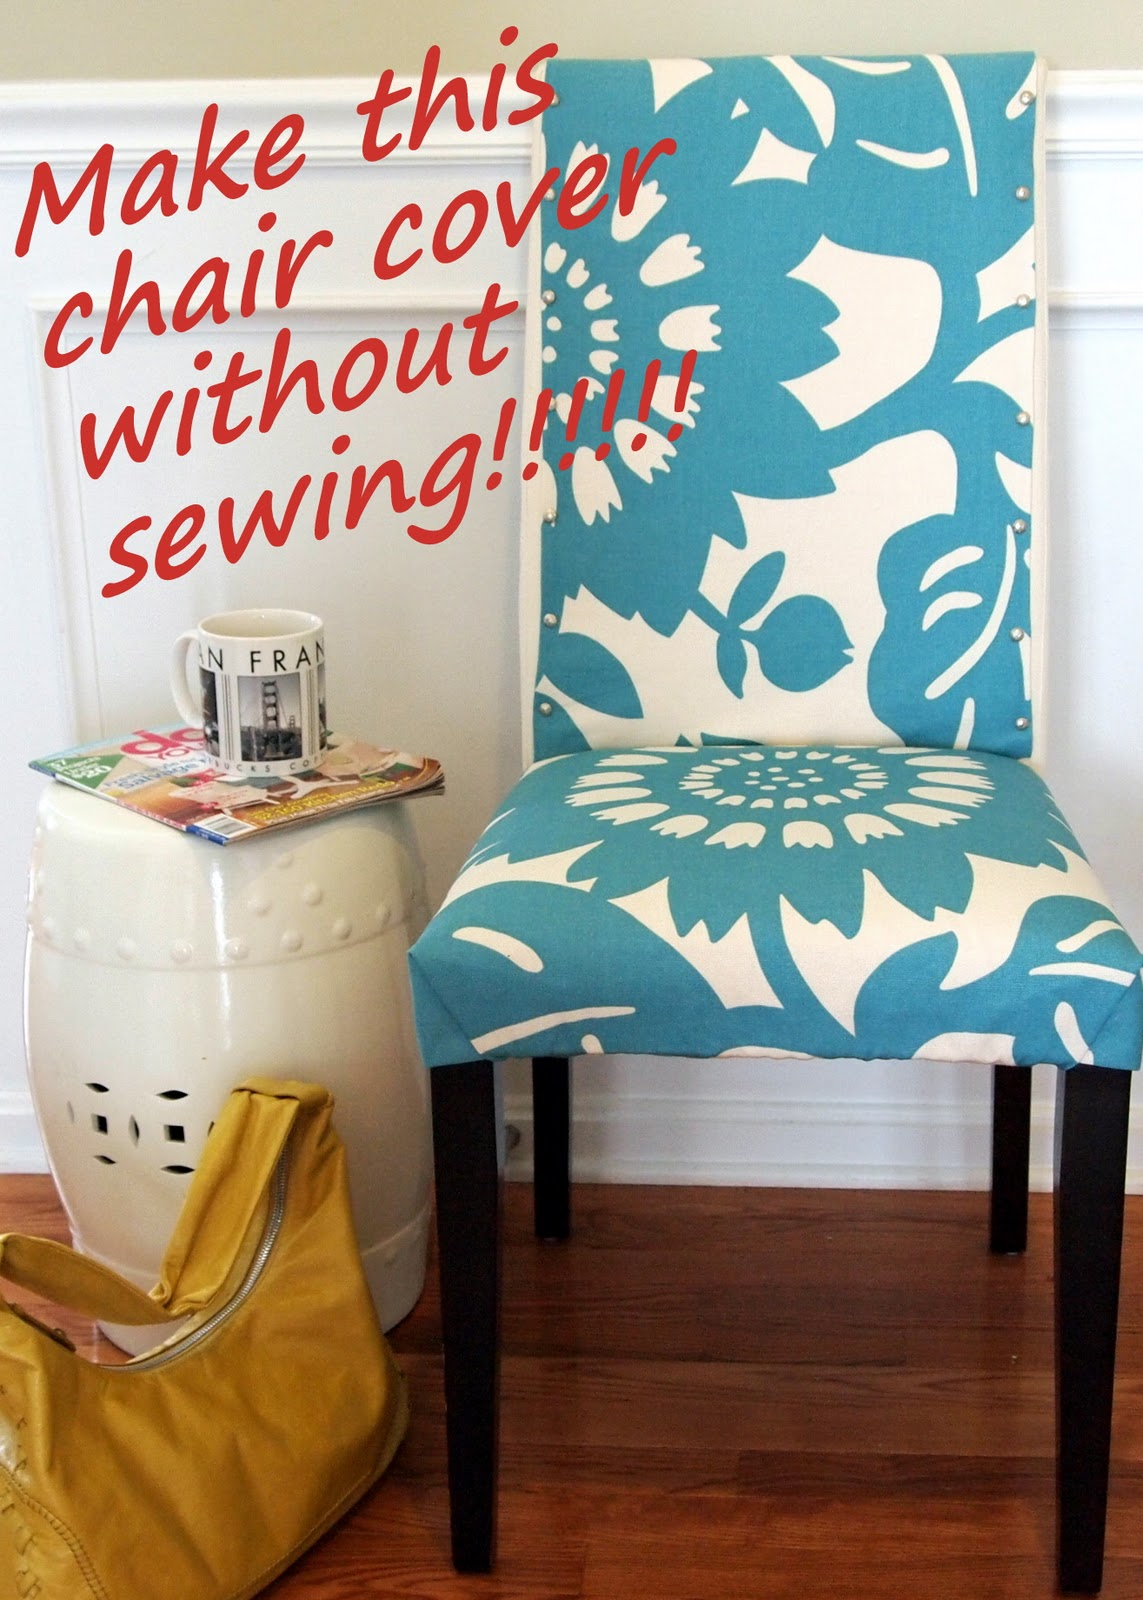 Dining Room Chair Cover Pattern Loveyourroom My Morning Slip Cover Chair Project Using